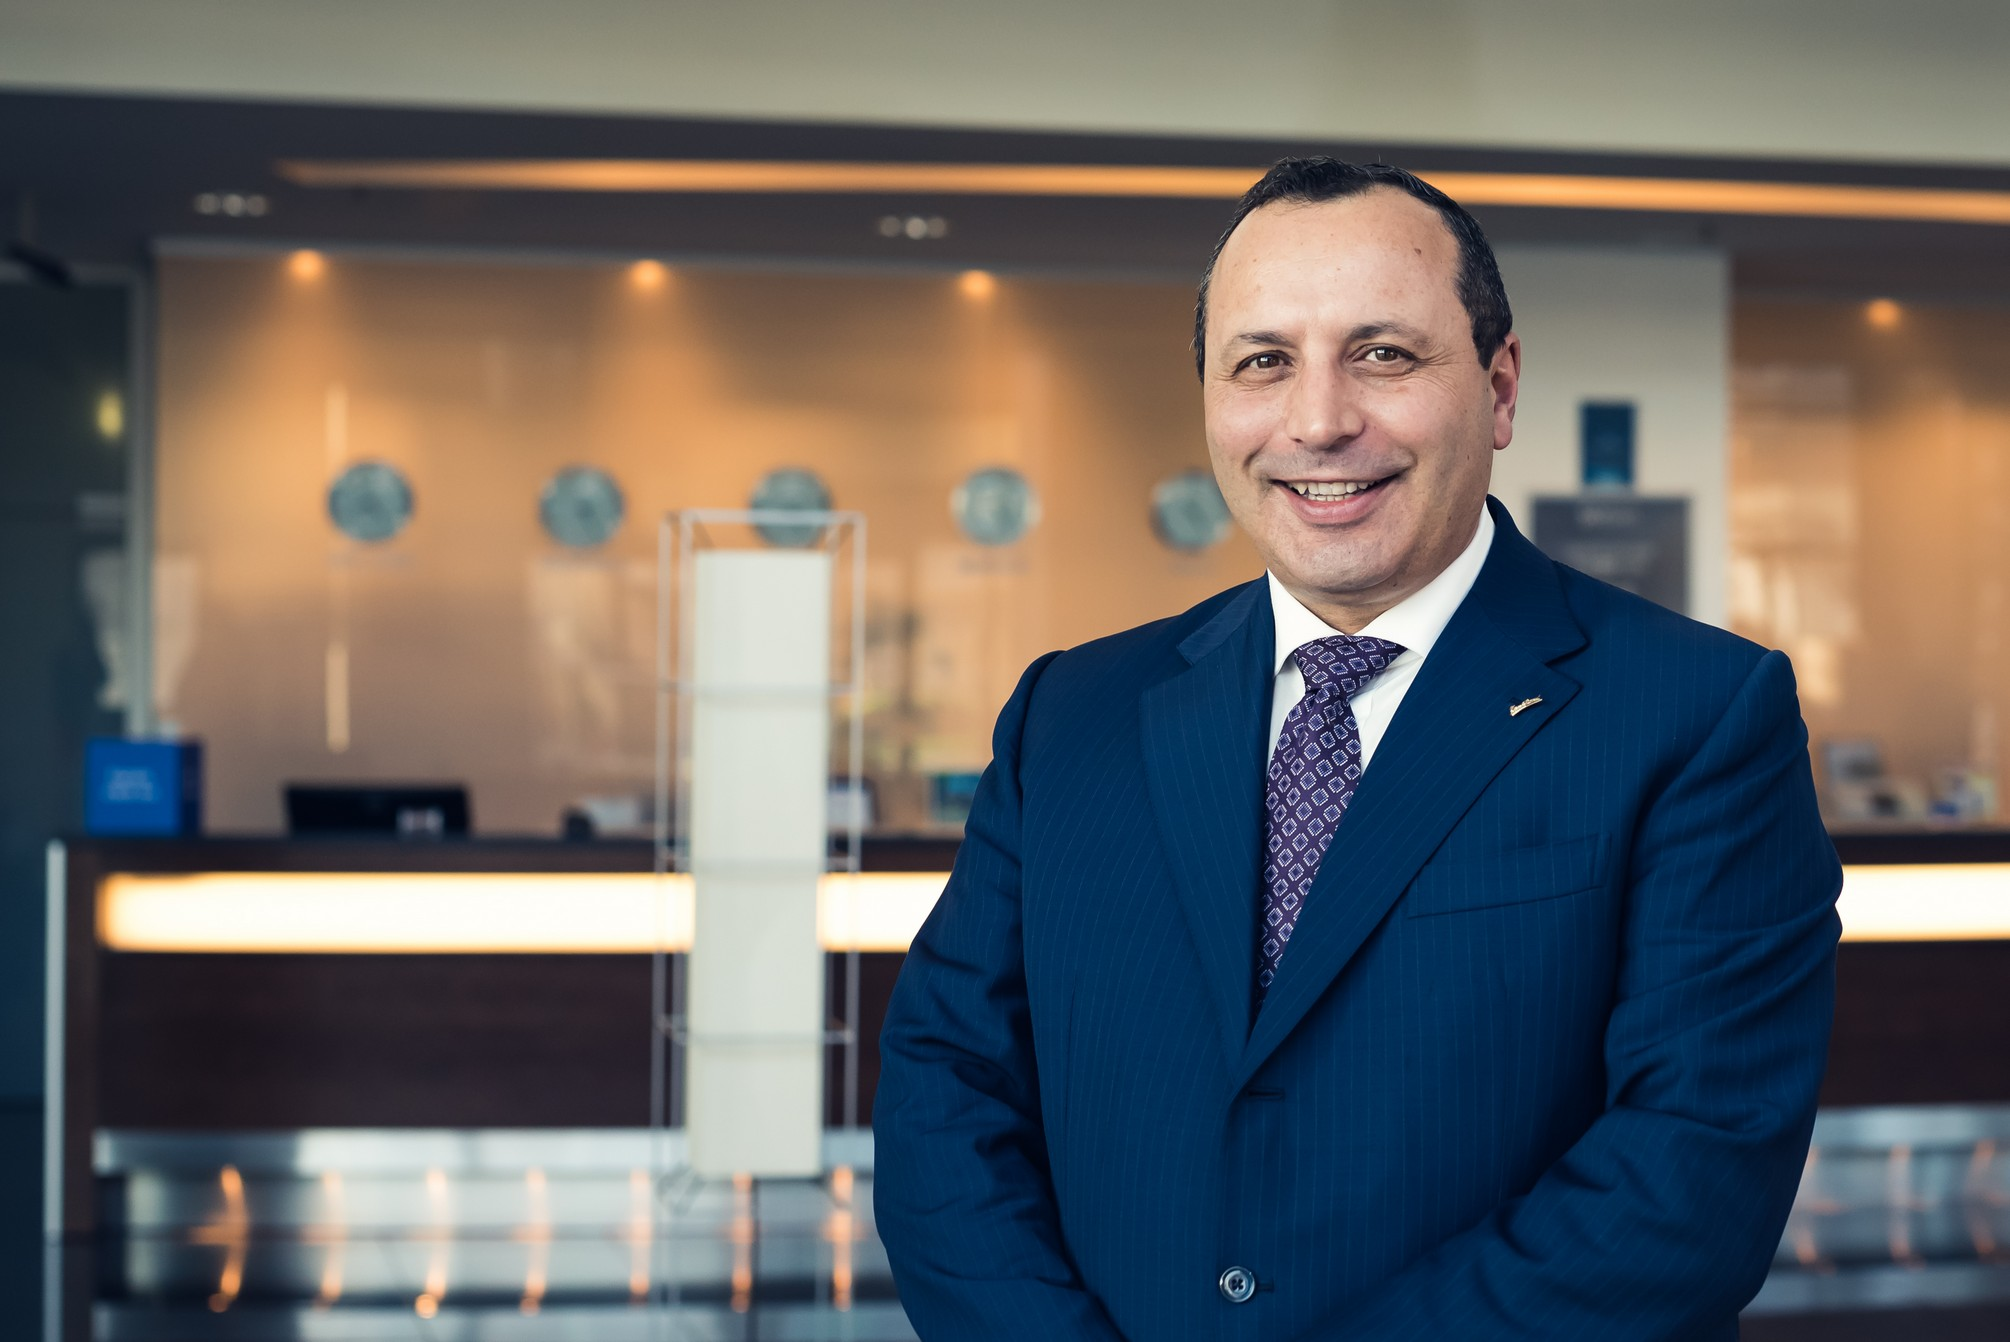 Radisson Hotel Group, appointment, Radisson Blu, Vilnius, Lietuva, Lithuania, management, GM, general manager, Strand, Stockholm, Milan, Rome, Massimo Supino